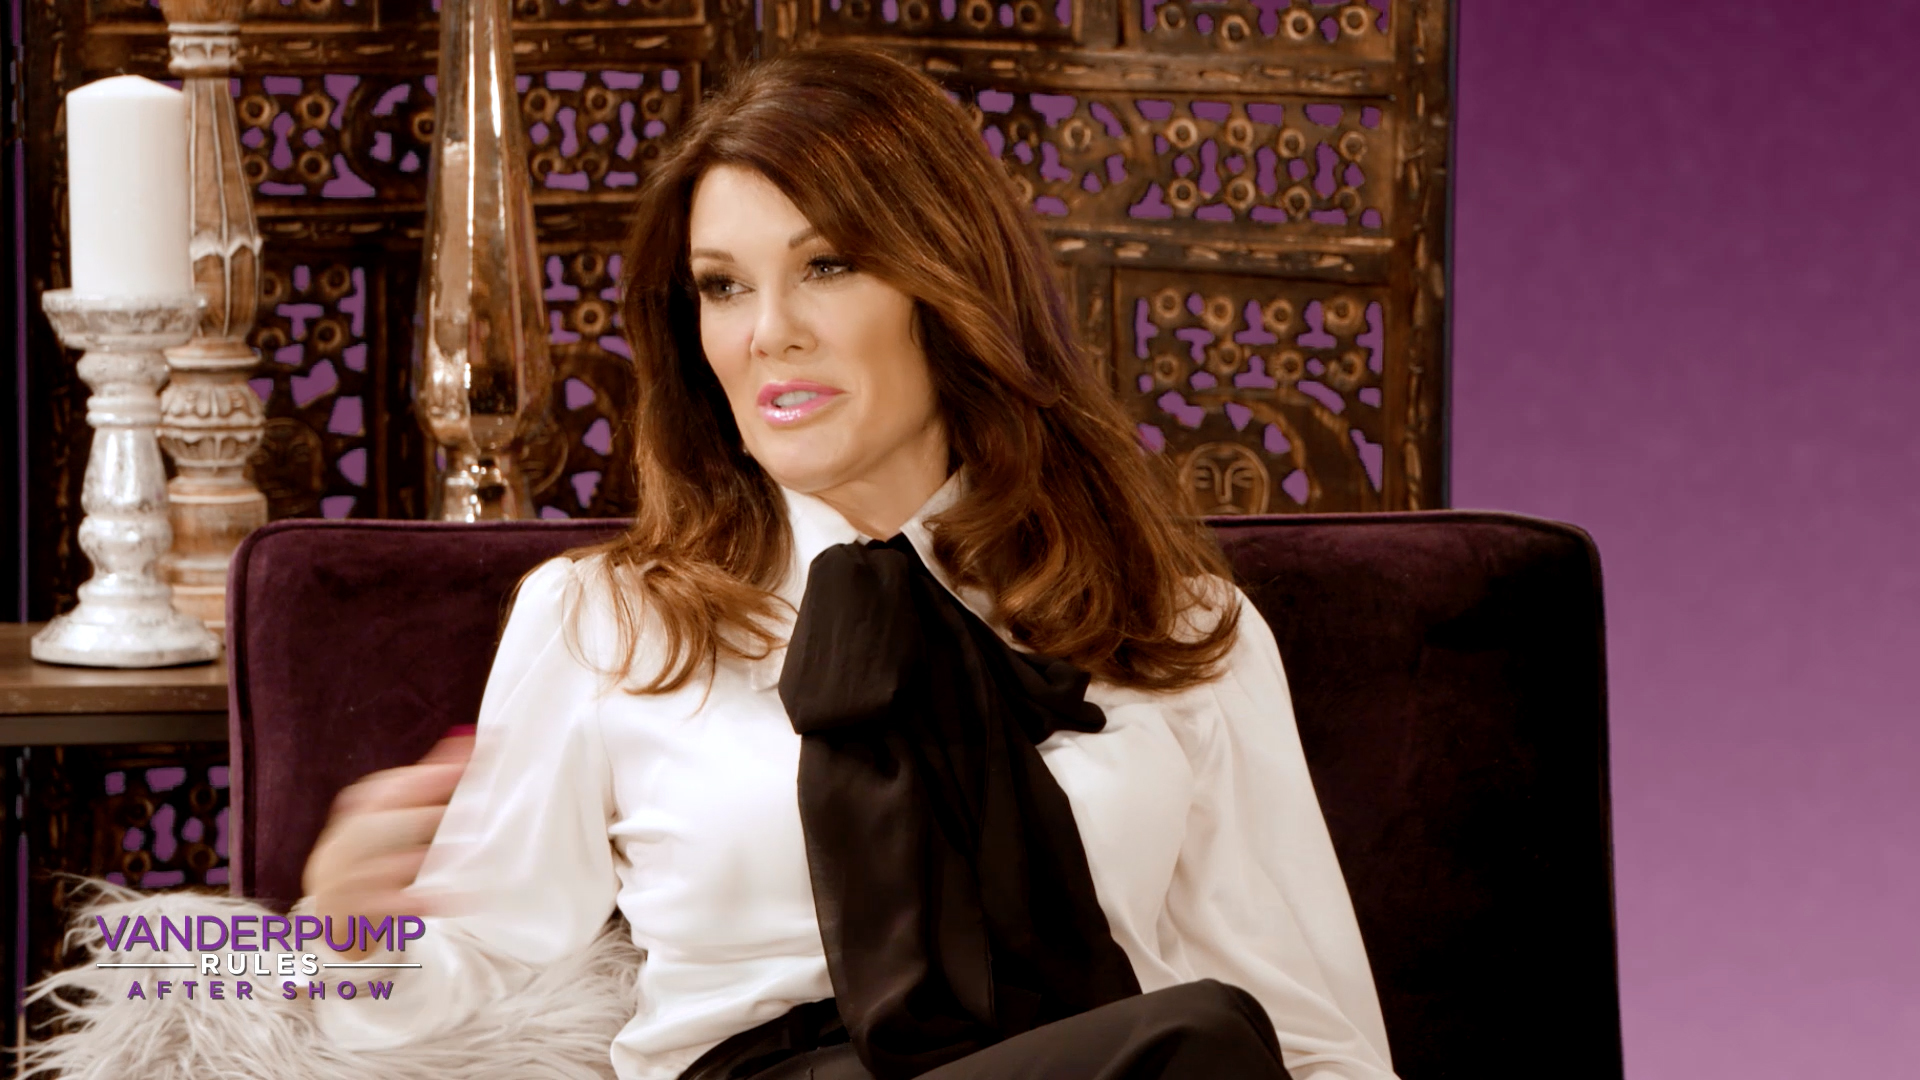 Can You Believe Lisa Vanderpump Chugged Beer From a Funnel For Jax and Brittany?!